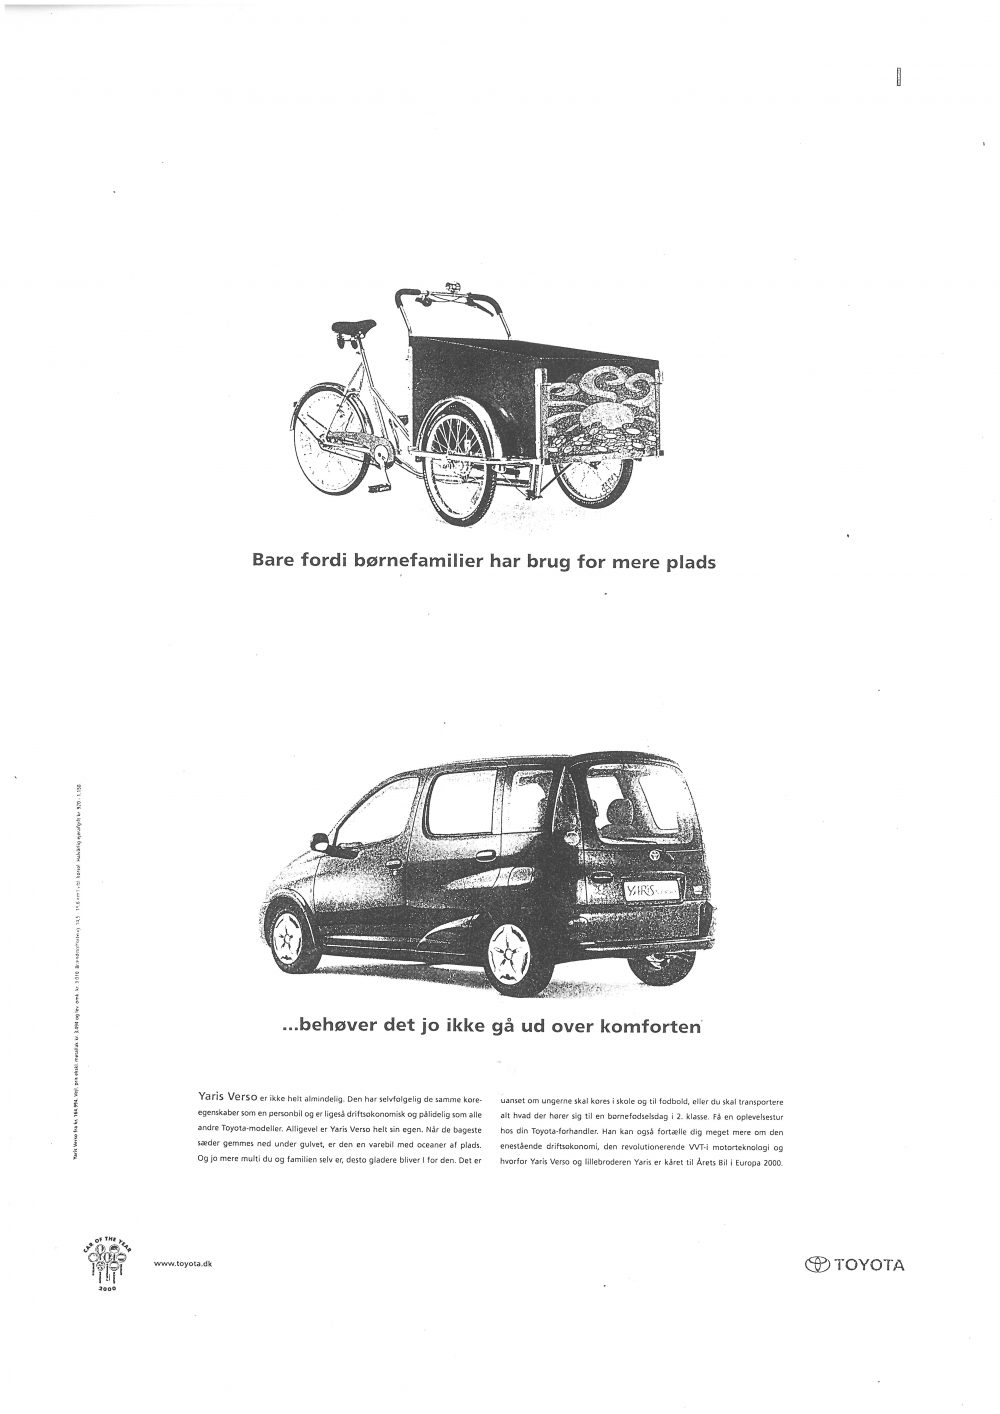 Old poster of cargo bike being compared to a car